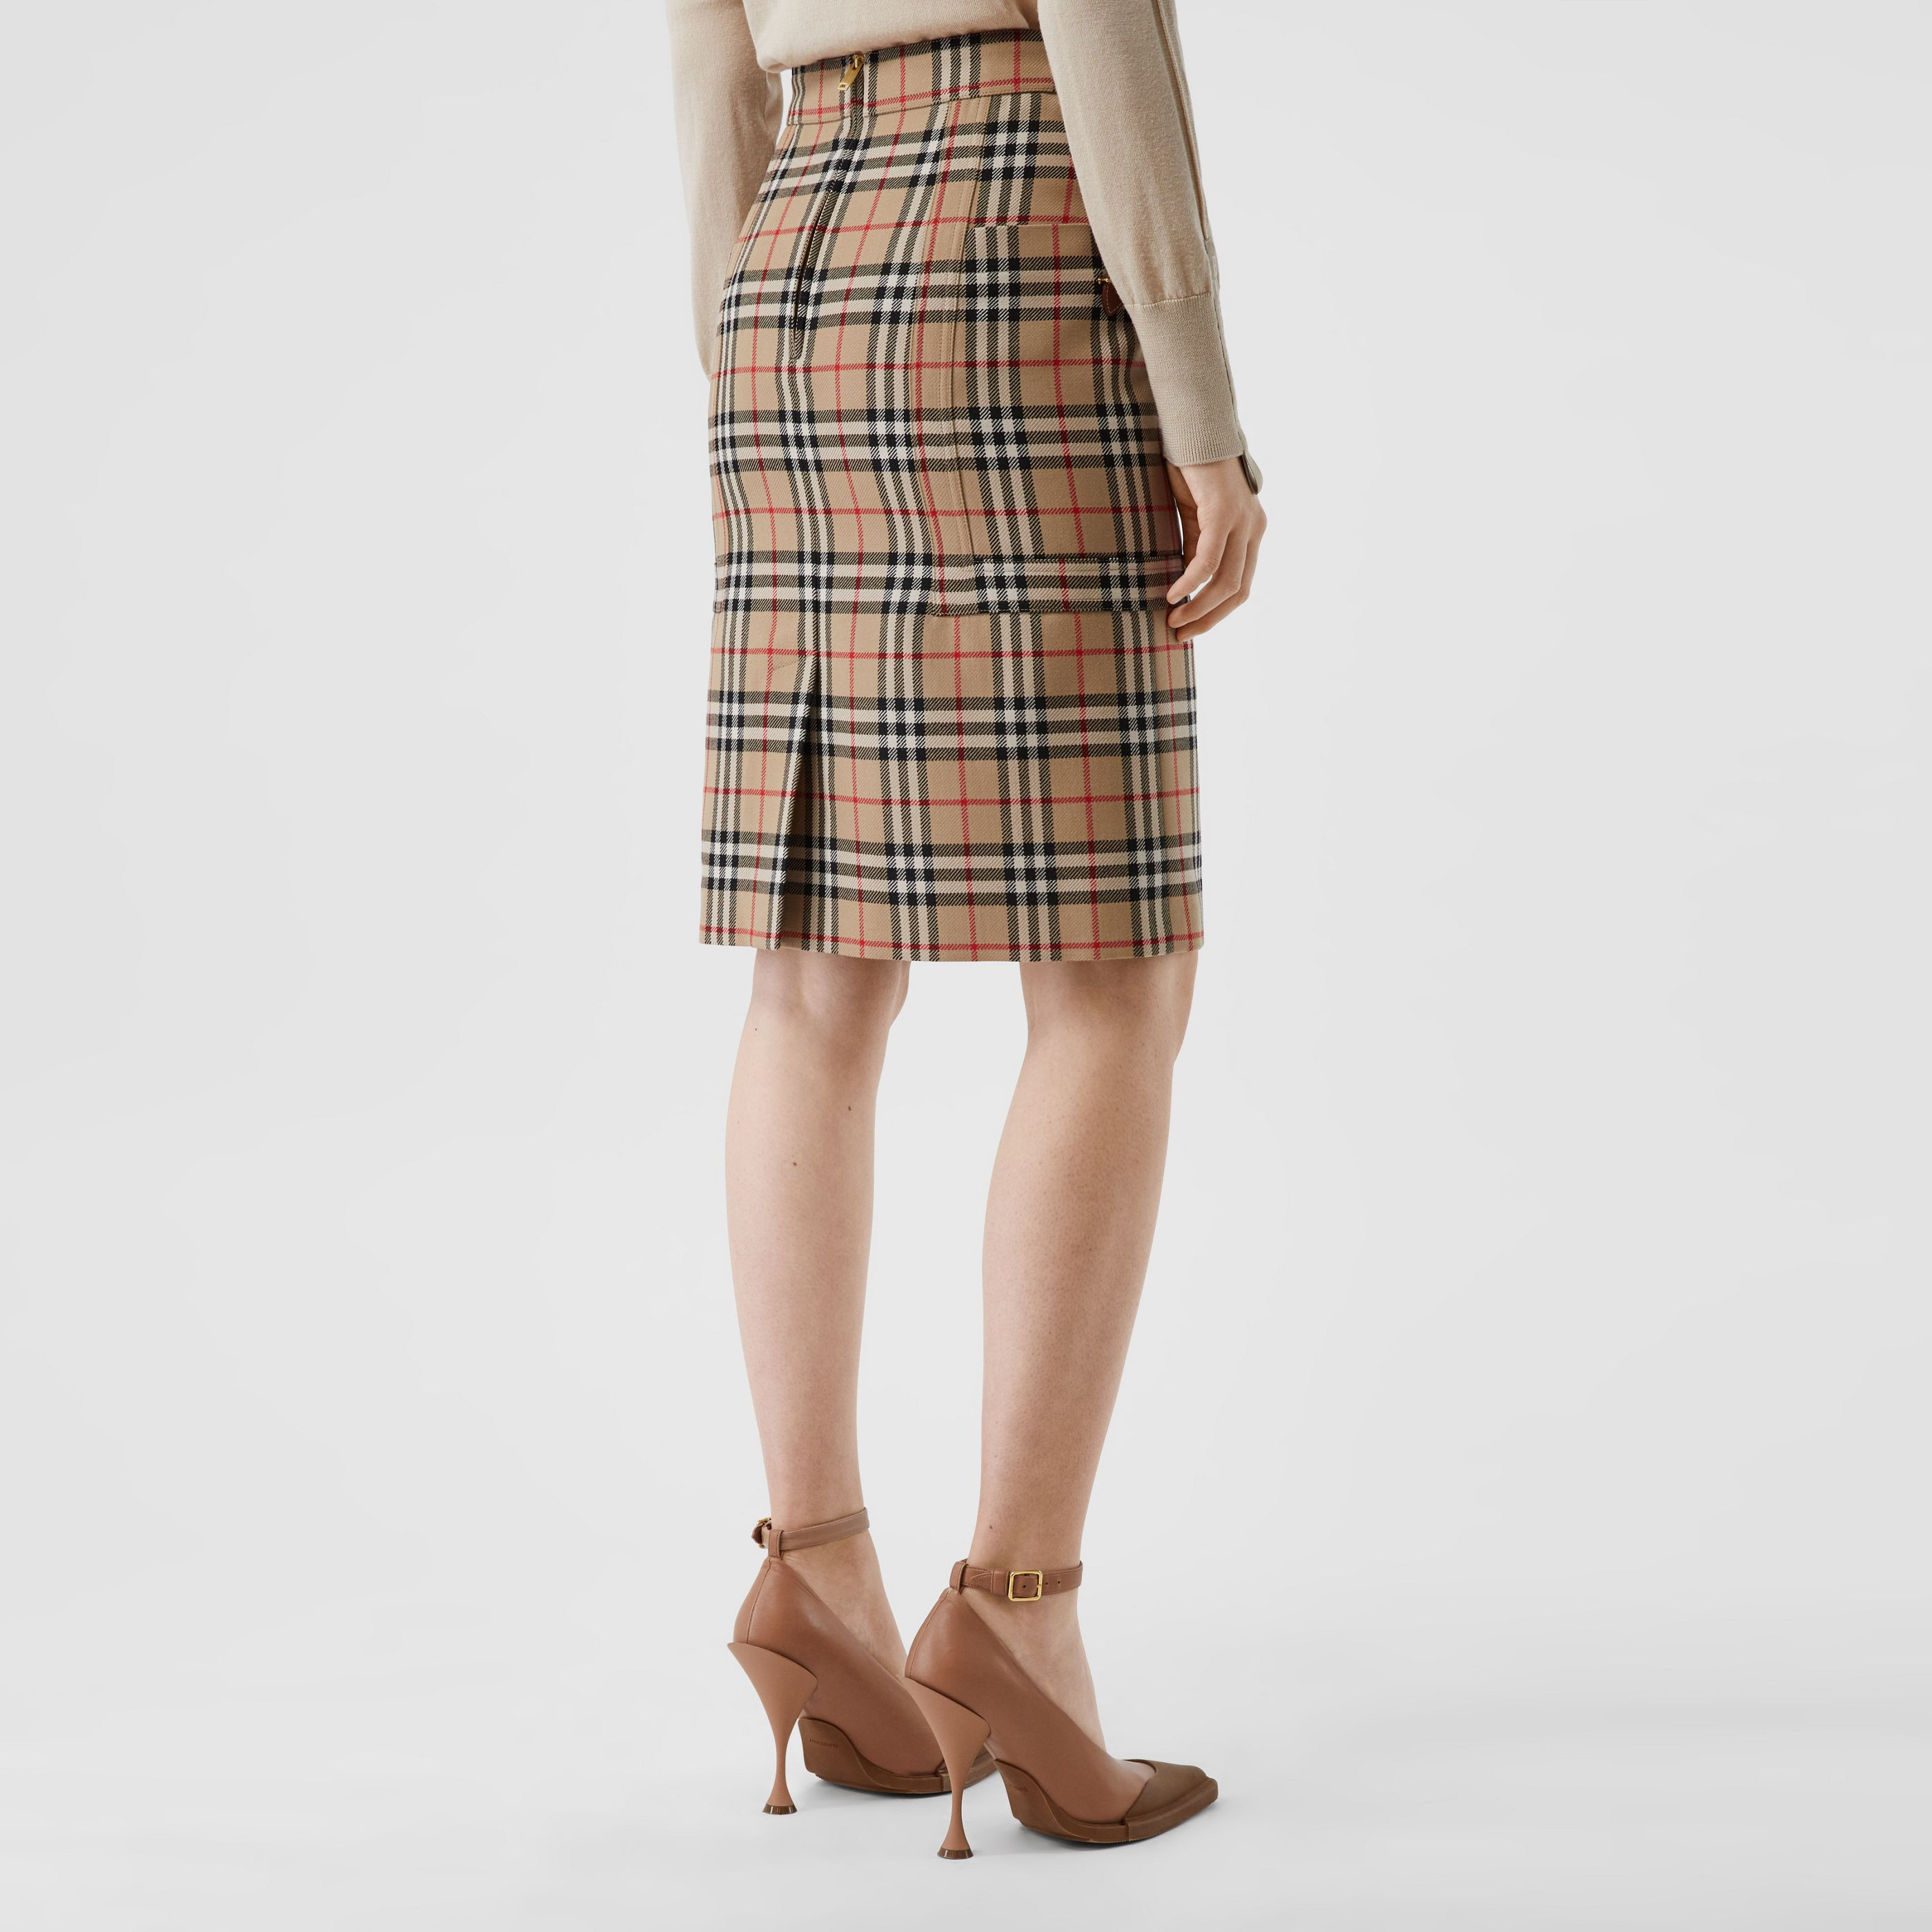 Gonna a tubo in lana con motivo Vintage check e tasche (Beige Archivio) - Donna | Burberry - 3